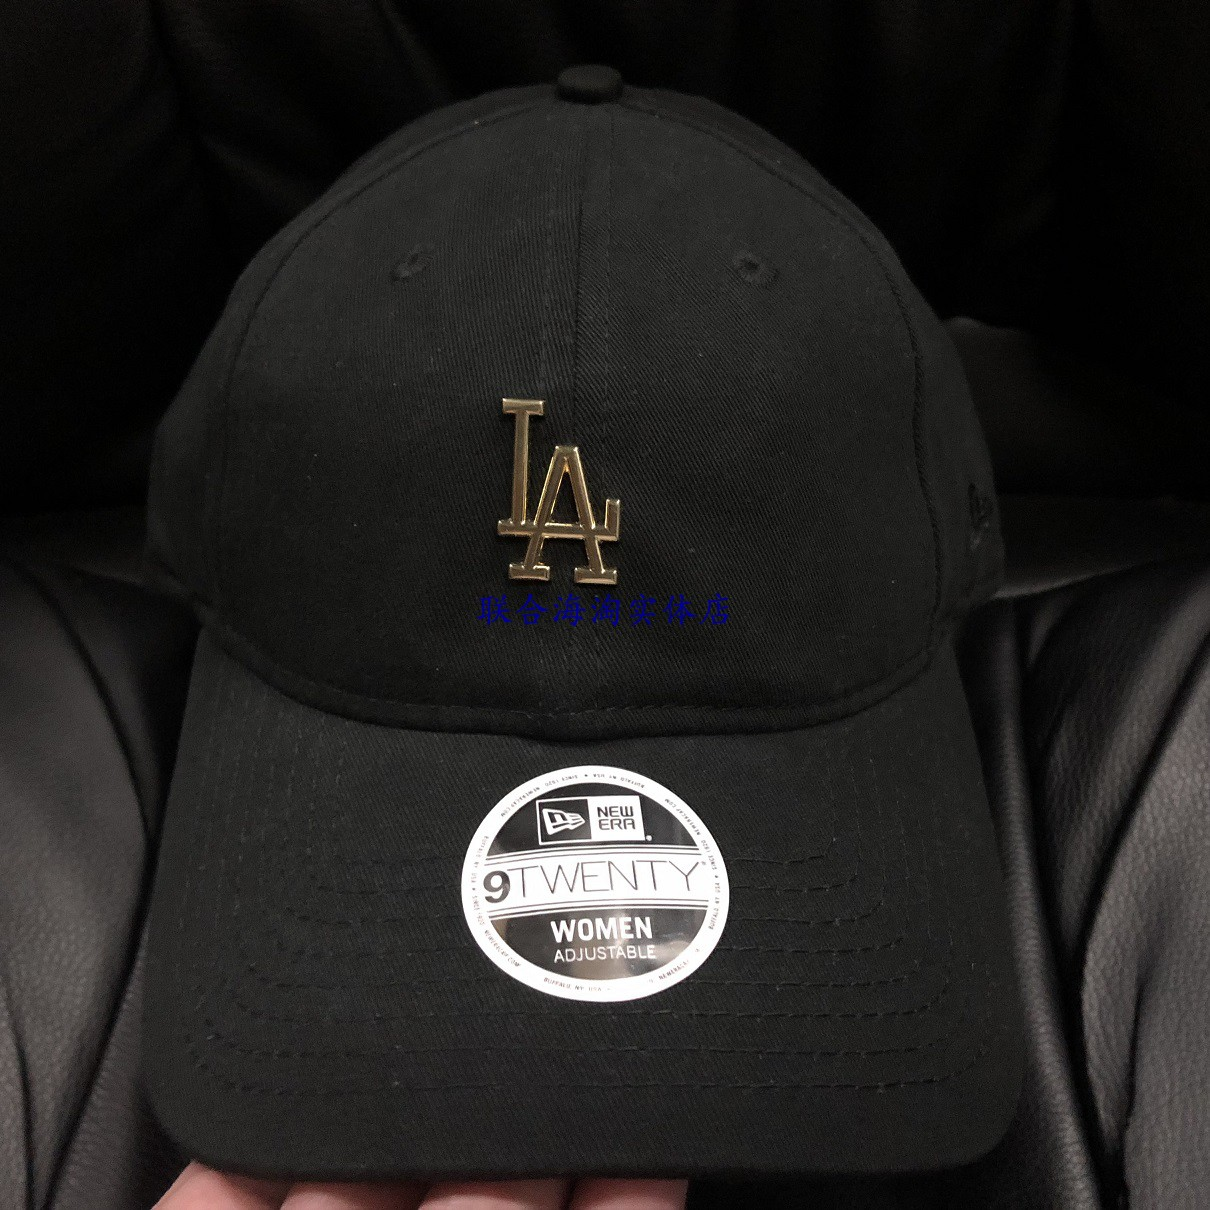 ... NEW ERA Yankees small NY metal standard adjustable cap curved hat. Zoom  · lightbox moreview · lightbox moreview · lightbox moreview ... 70b1824ab24